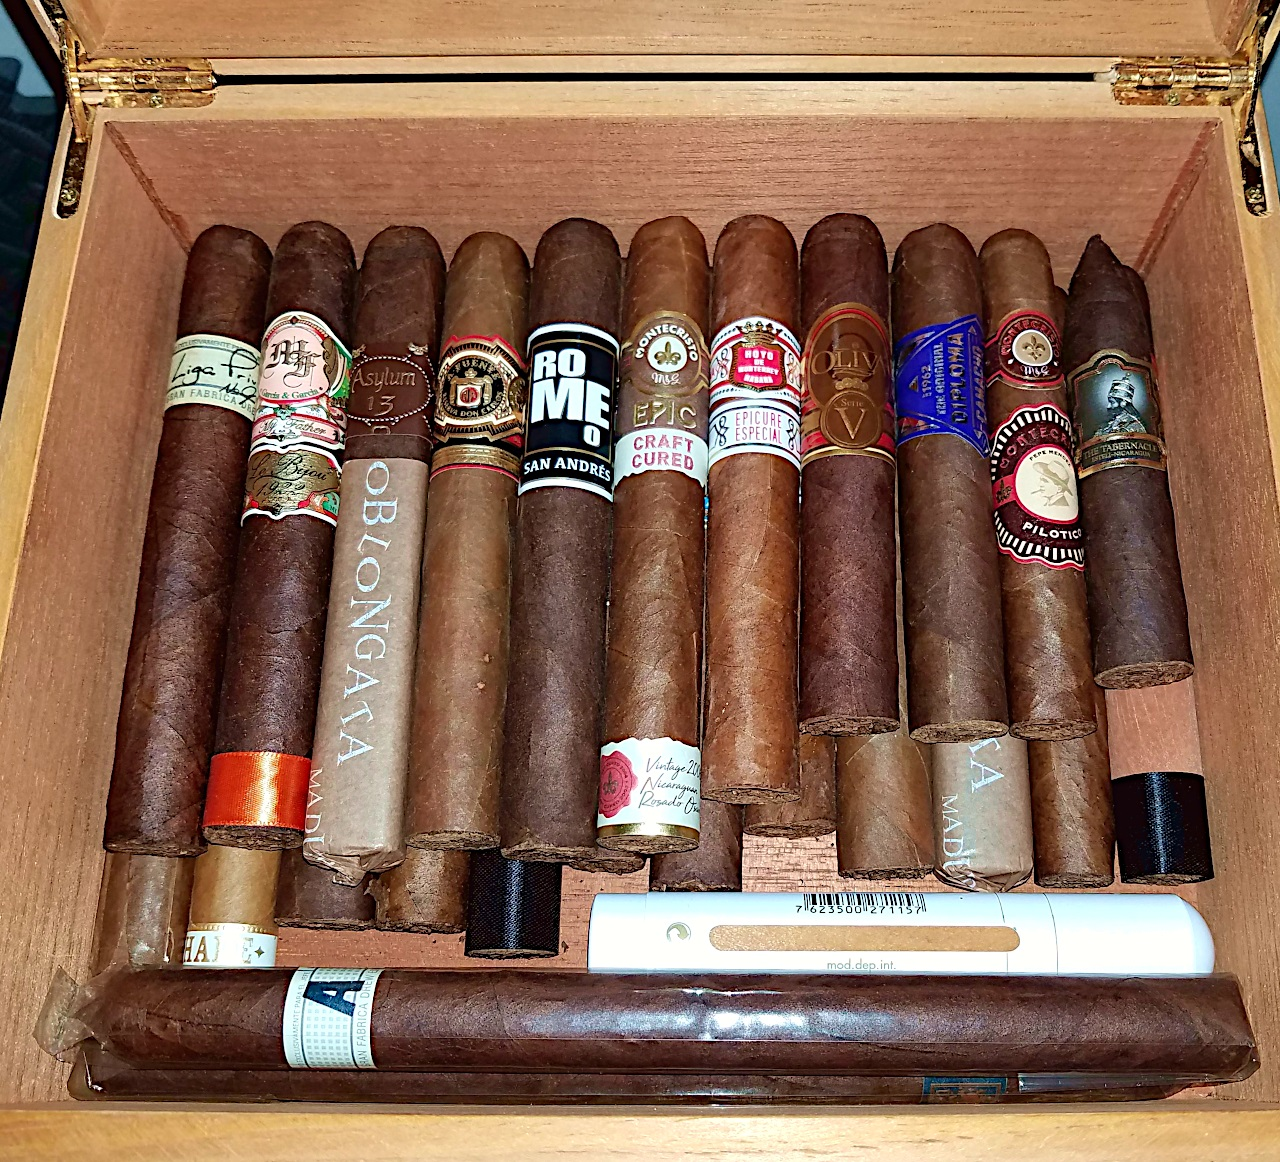 5 things about aging cigars - aging cigars at home in Gary's humidor